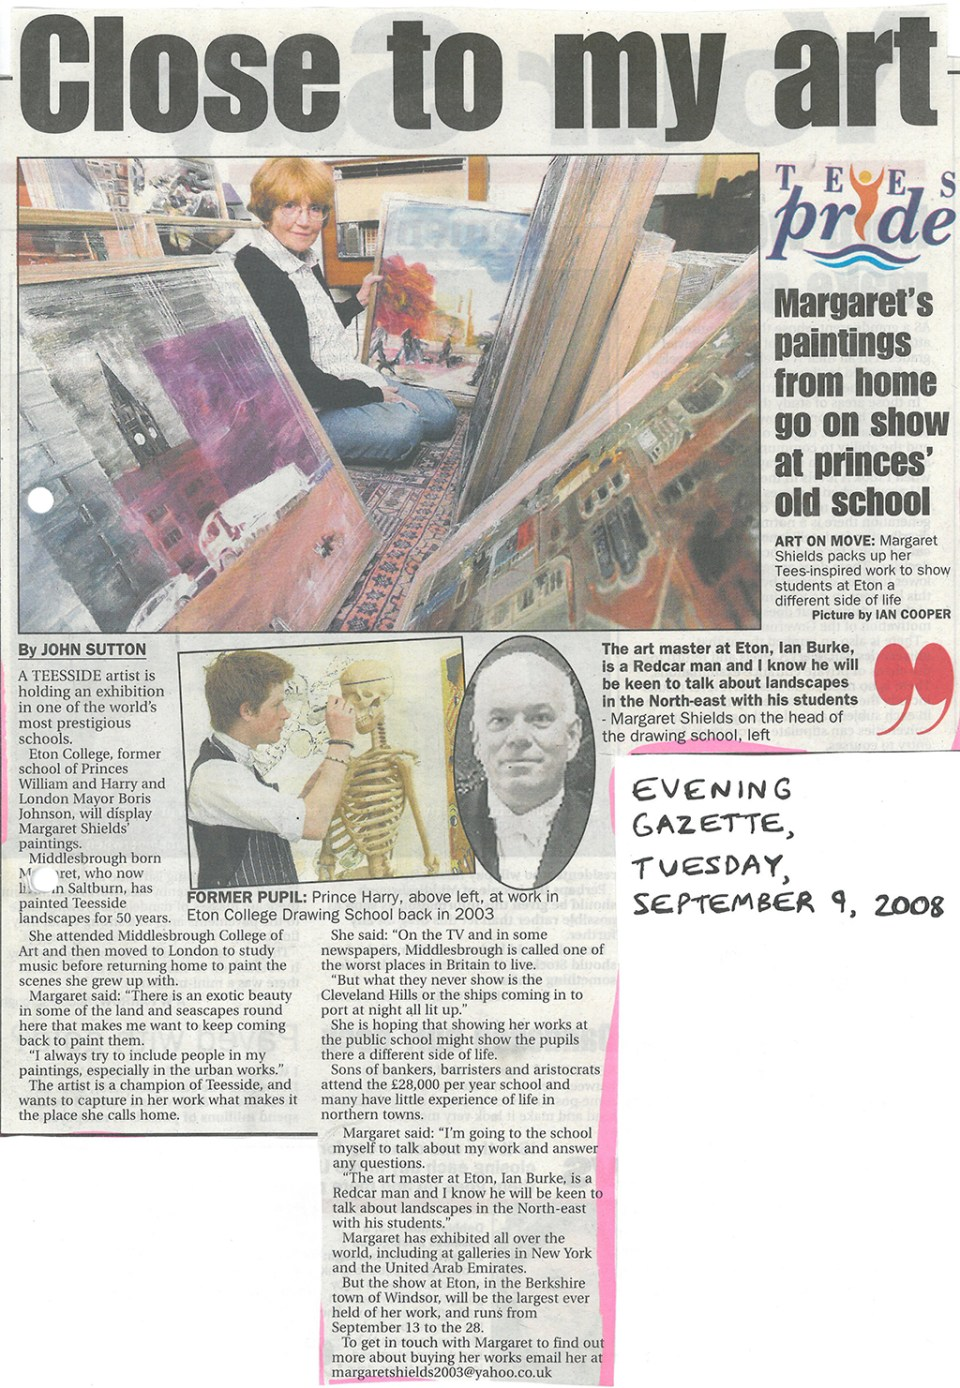 2008-09-09, Evening Gazette